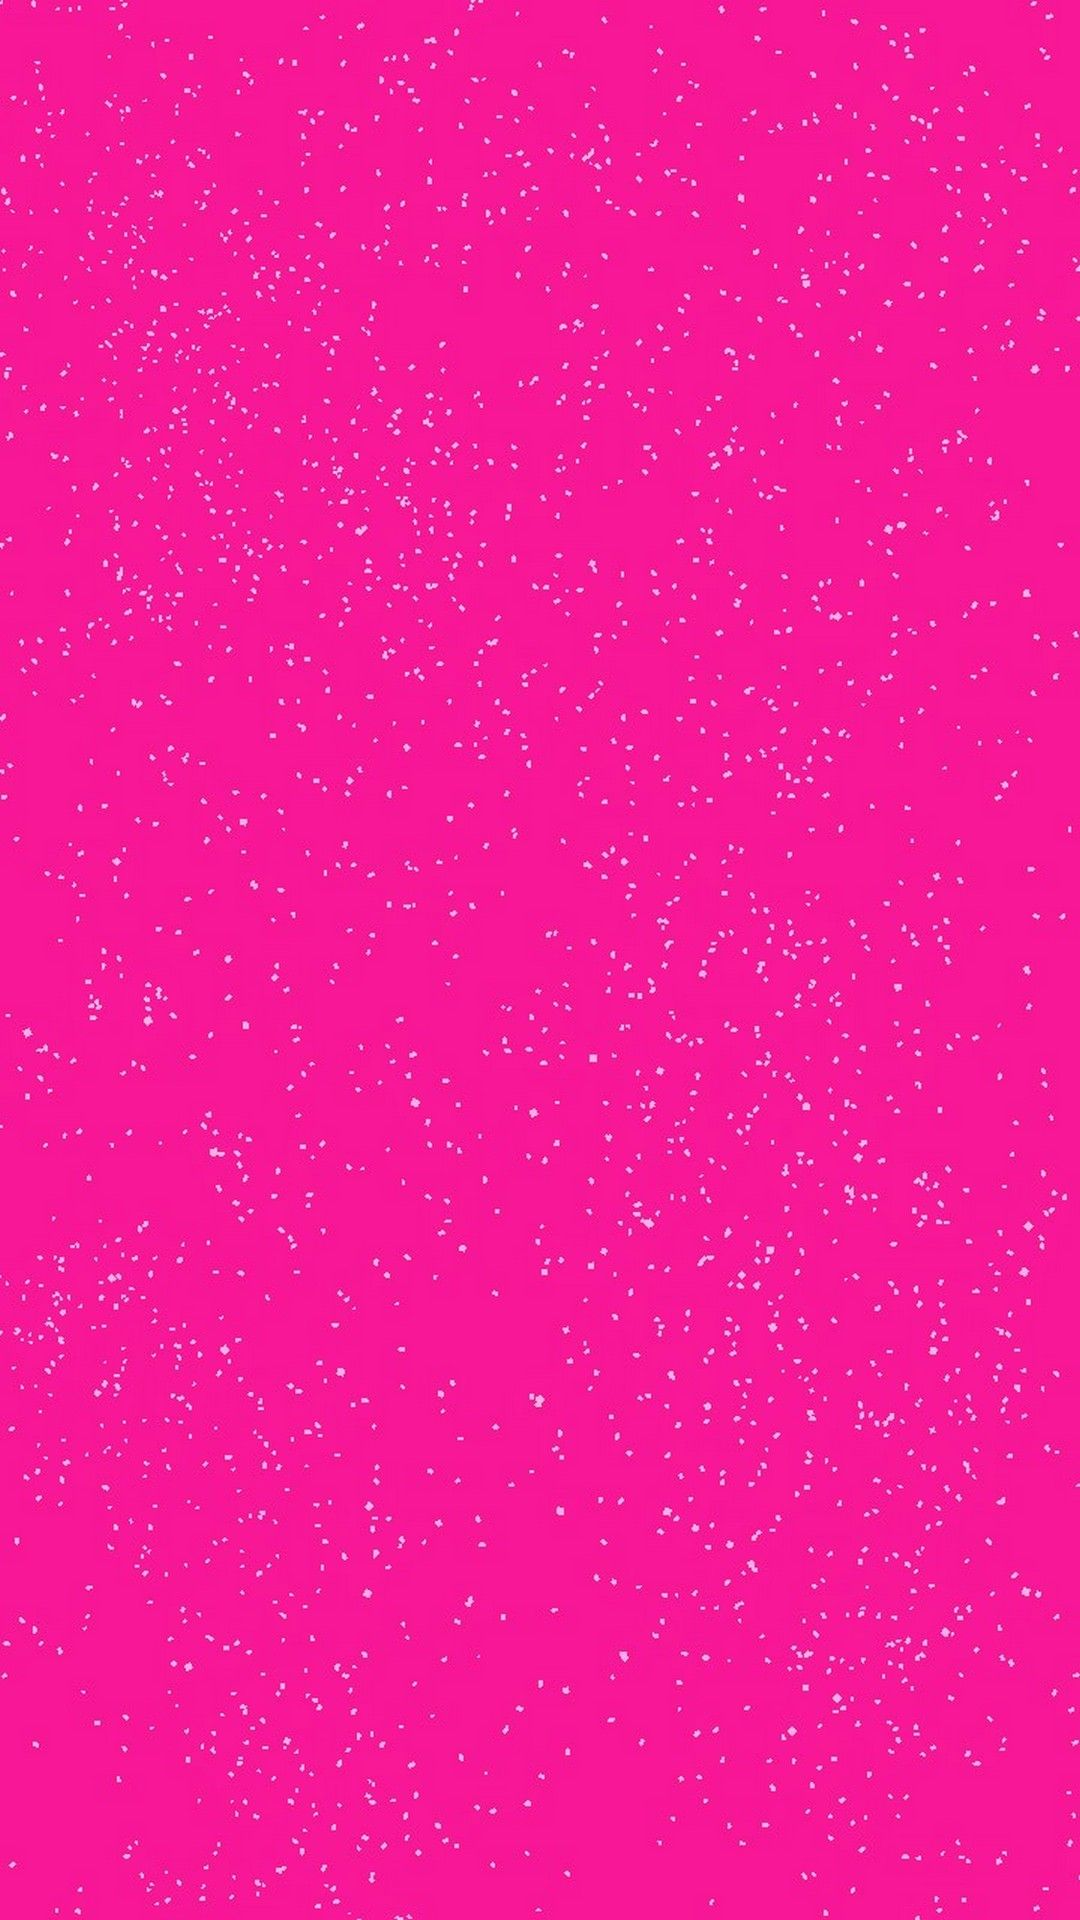 1080x1920 Pink Glitter iPhone Wallpaper | 2019 3D iPhone Wallpaper